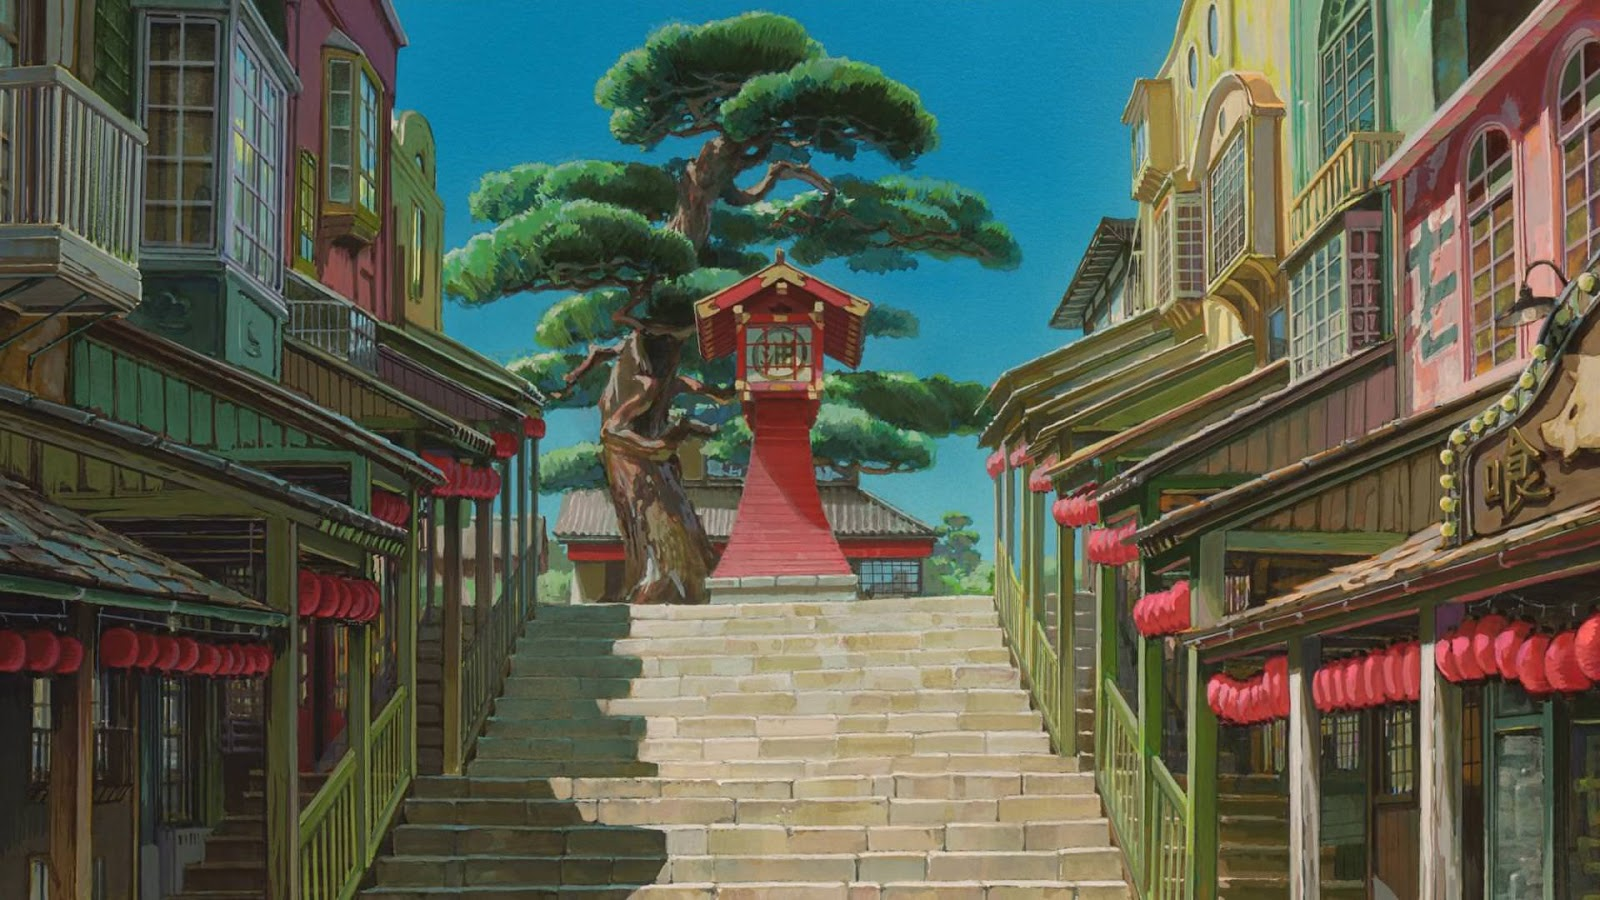 Spirited Away Background Artistry Yoji Takeshige Art Director